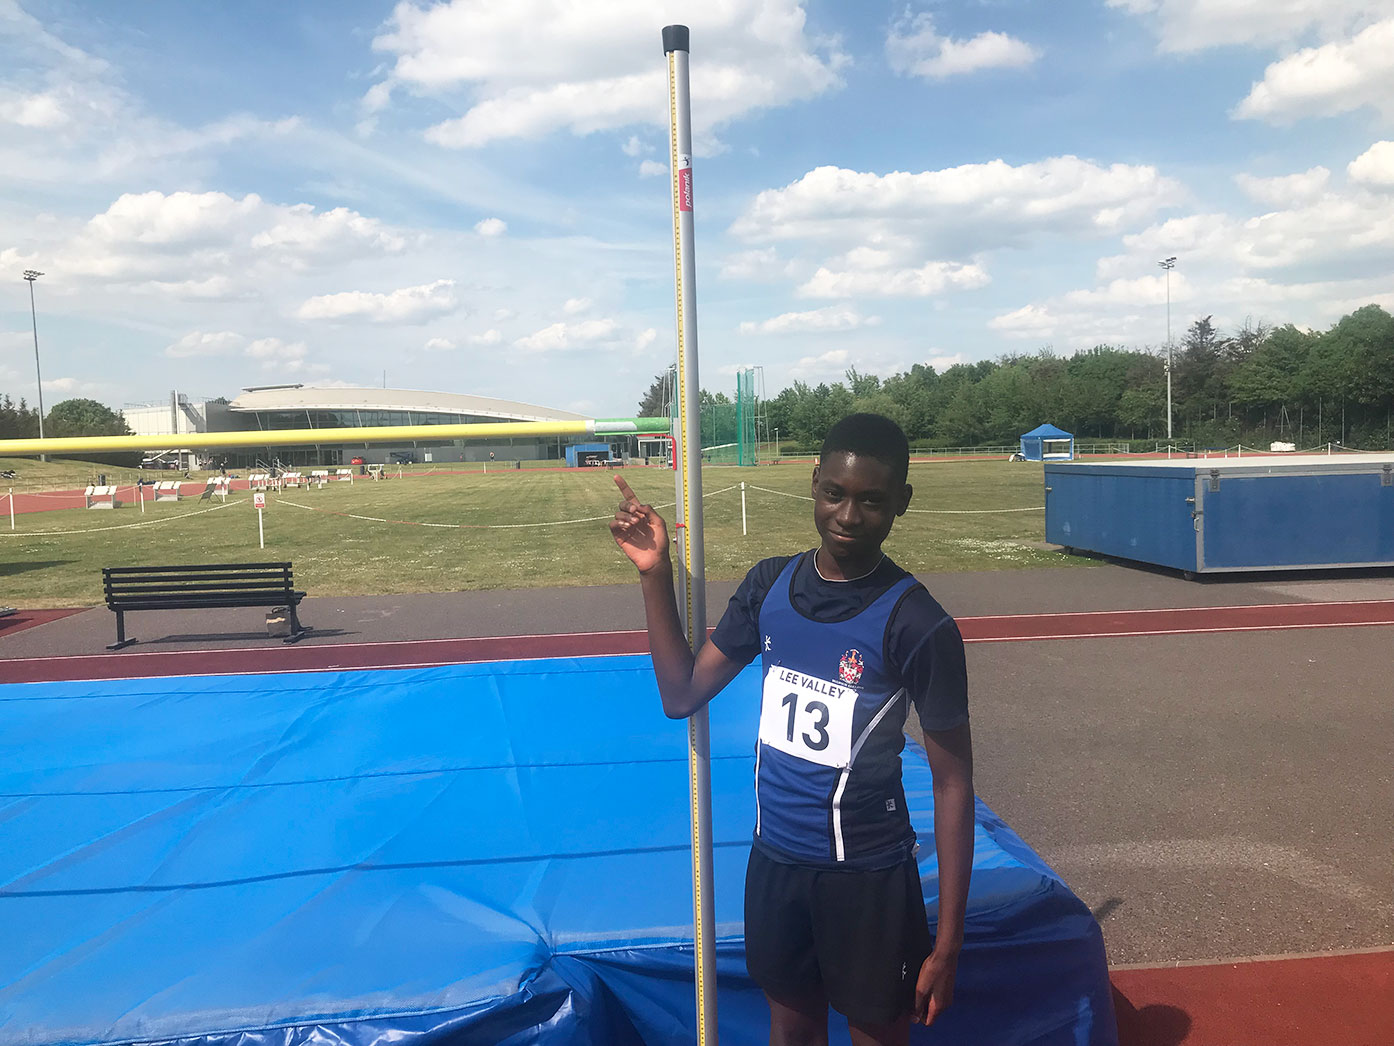 1.80m high jump equals personal best and breaks Year 9 school record